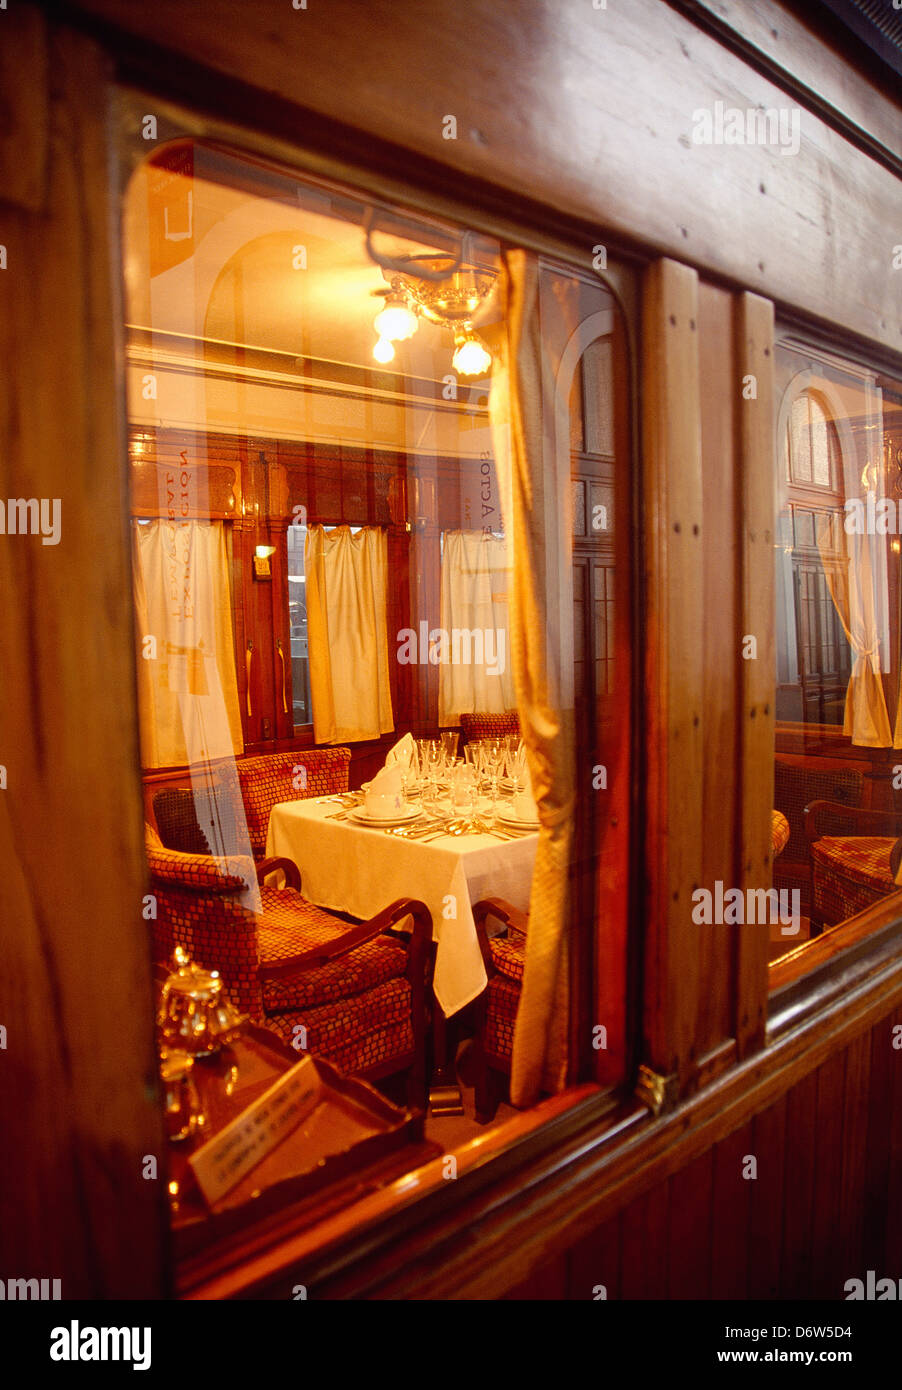 Old restaurant car, view from the window. Delicias Railway Station, Railway Museum, Madrid, Spain. - Stock Image